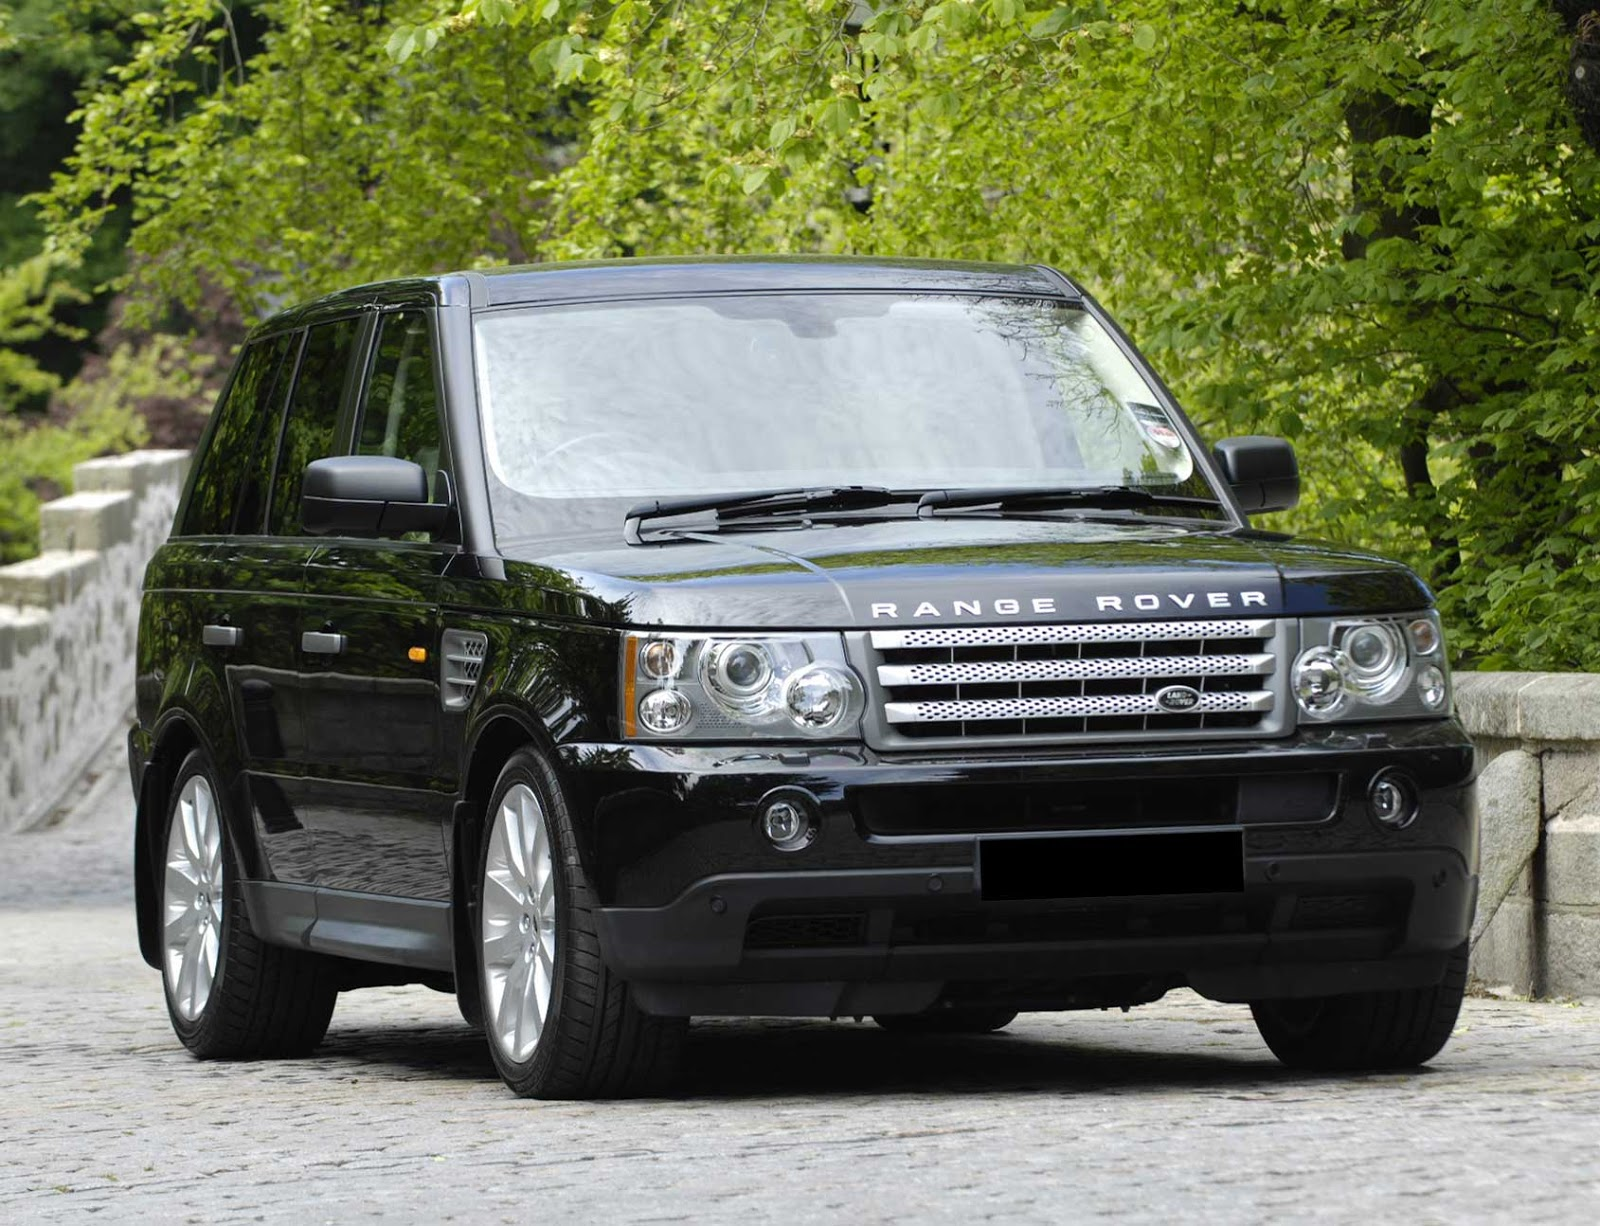 Ramblings of Doug Who would drive a black Range Rover